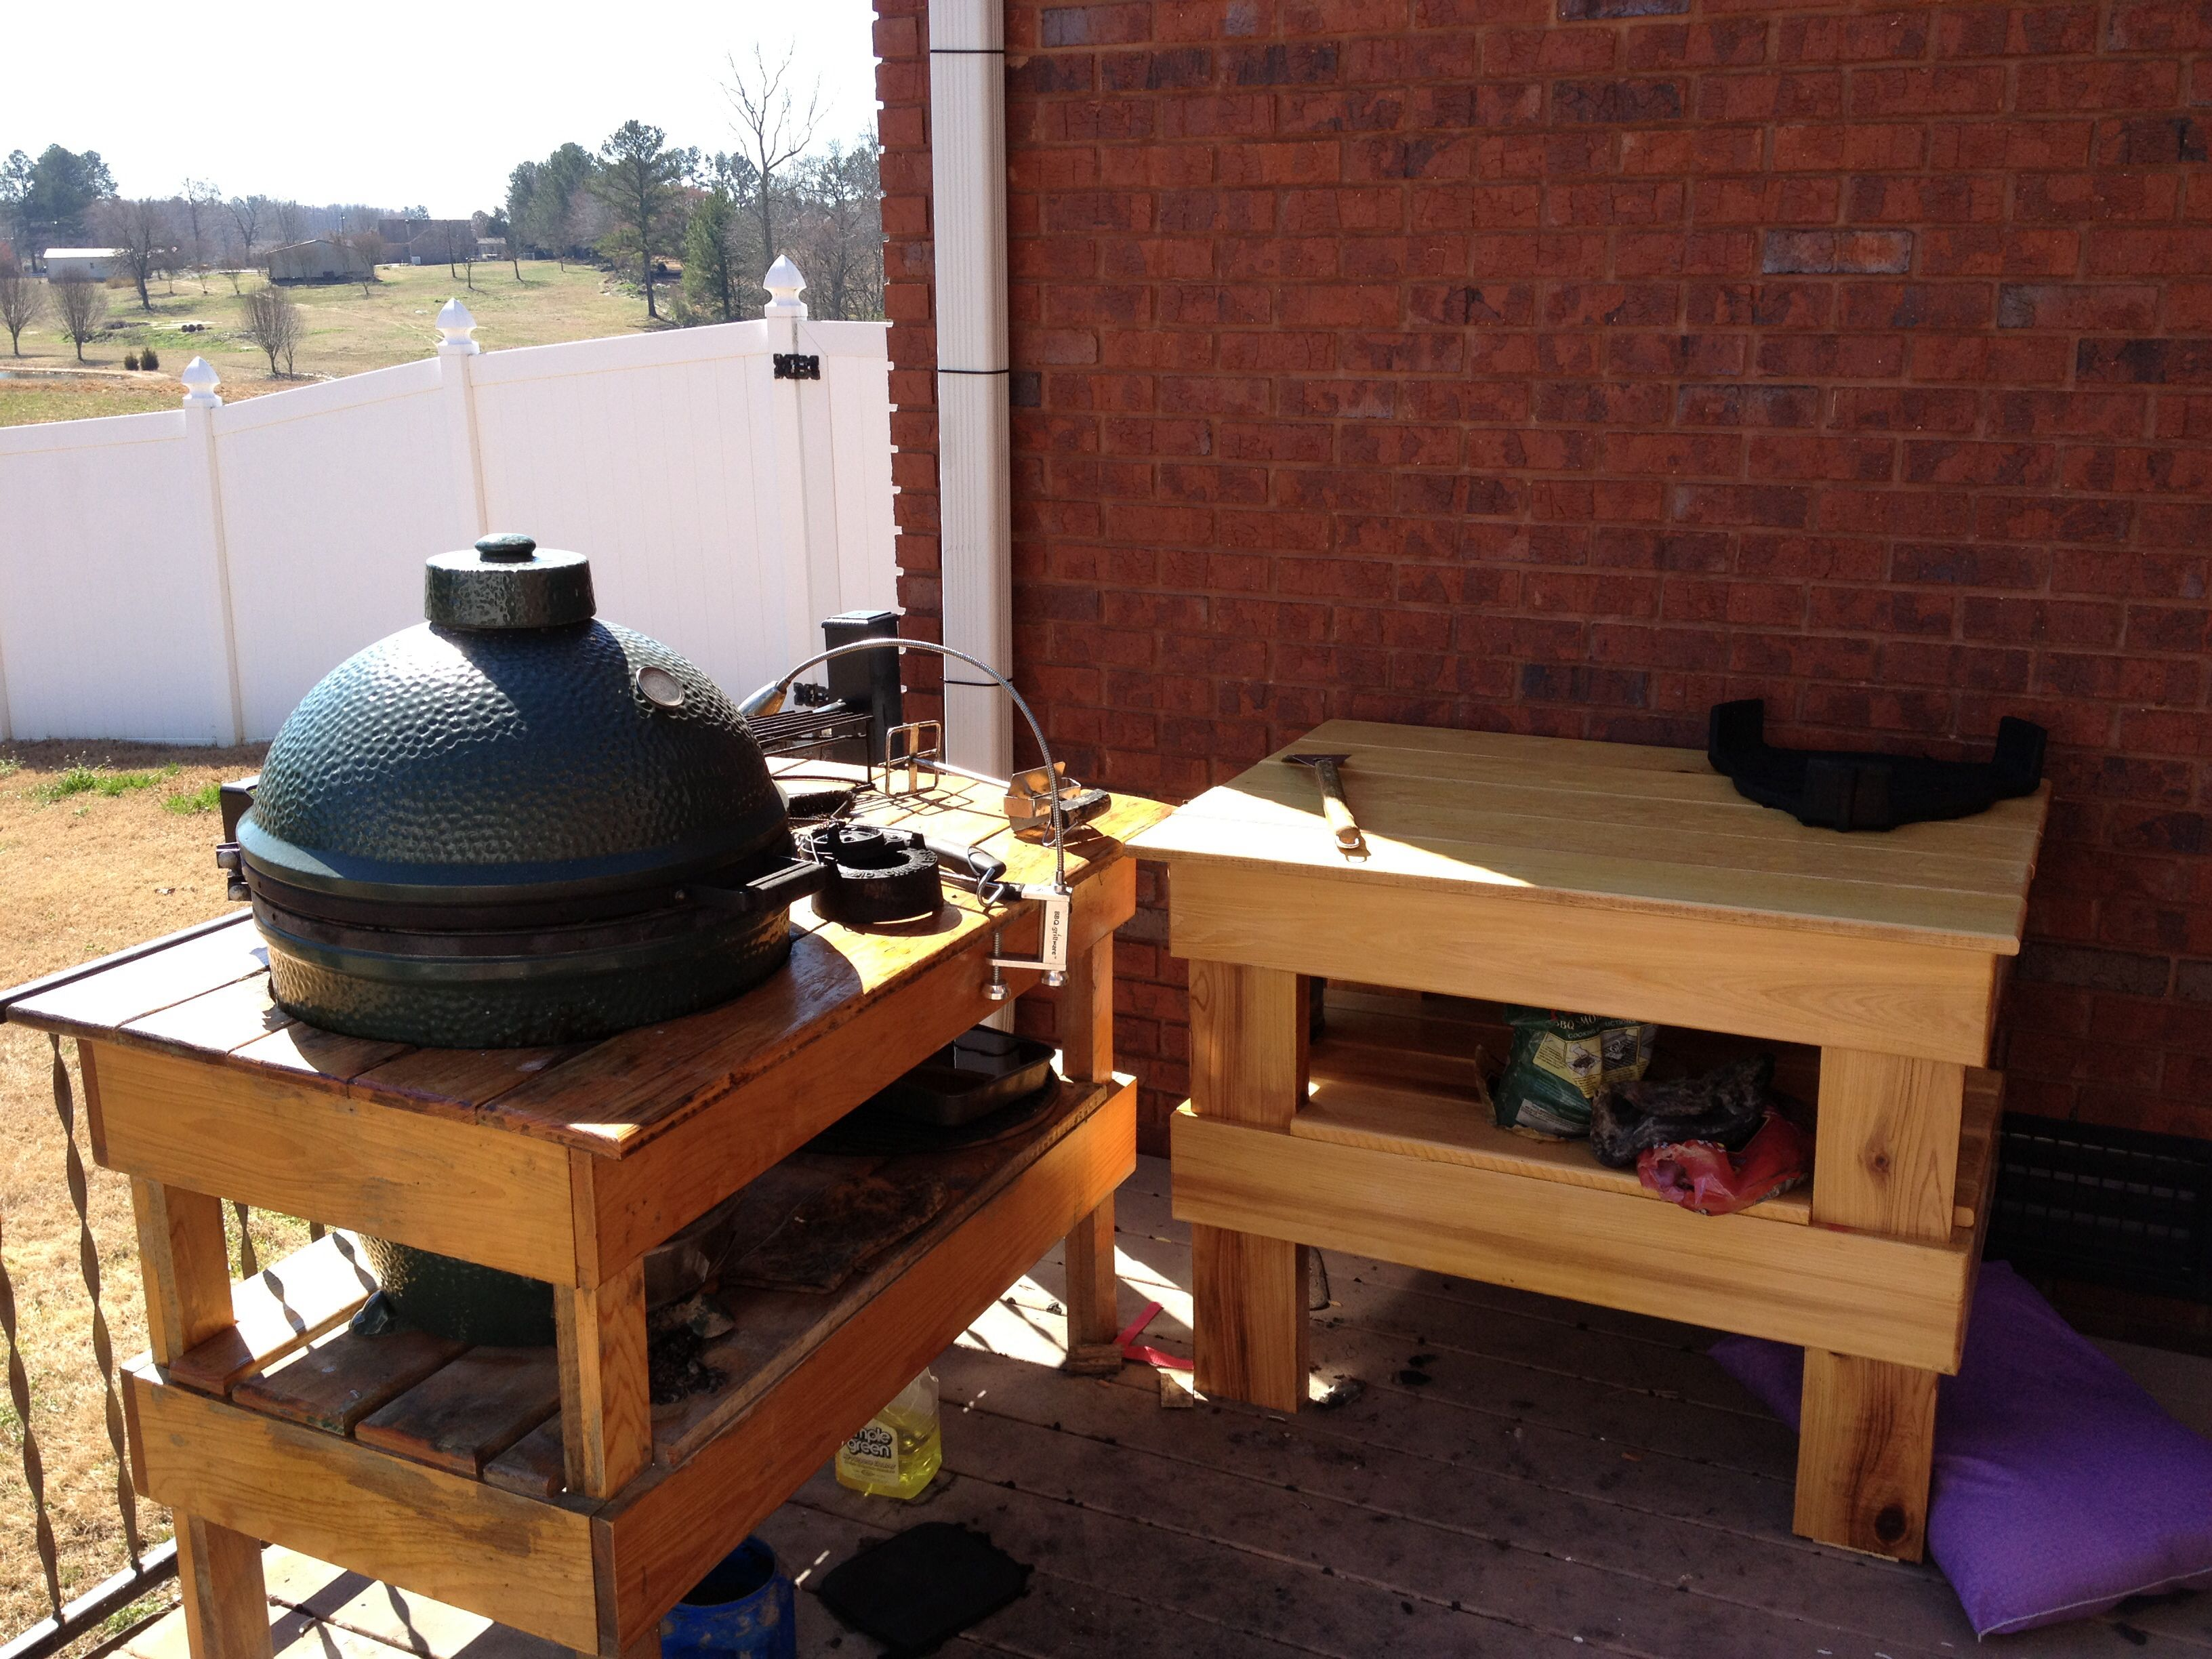 cypress wood grill table hobbies pinterest grill table